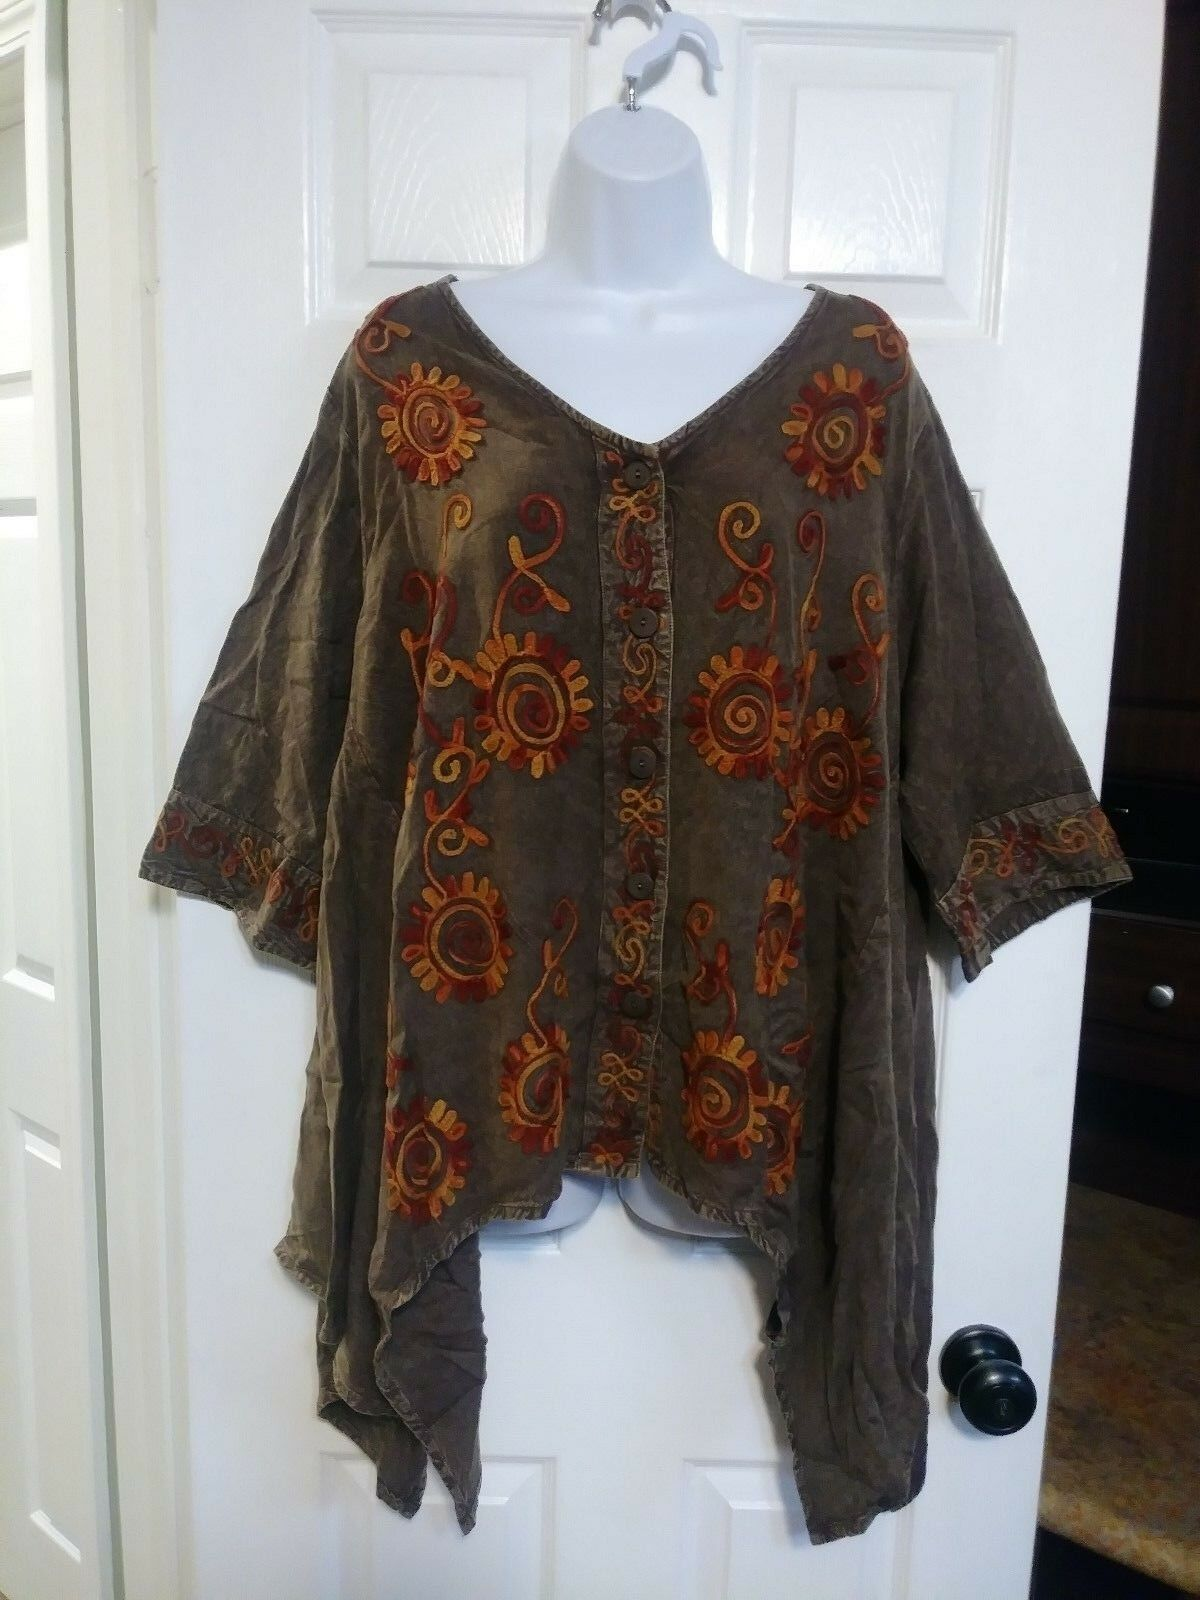 XL 1X SACrot THREADS PLUS TUNIC TOP BOHO  EMBROIDErot A-LINE 3 4 SLEEVE